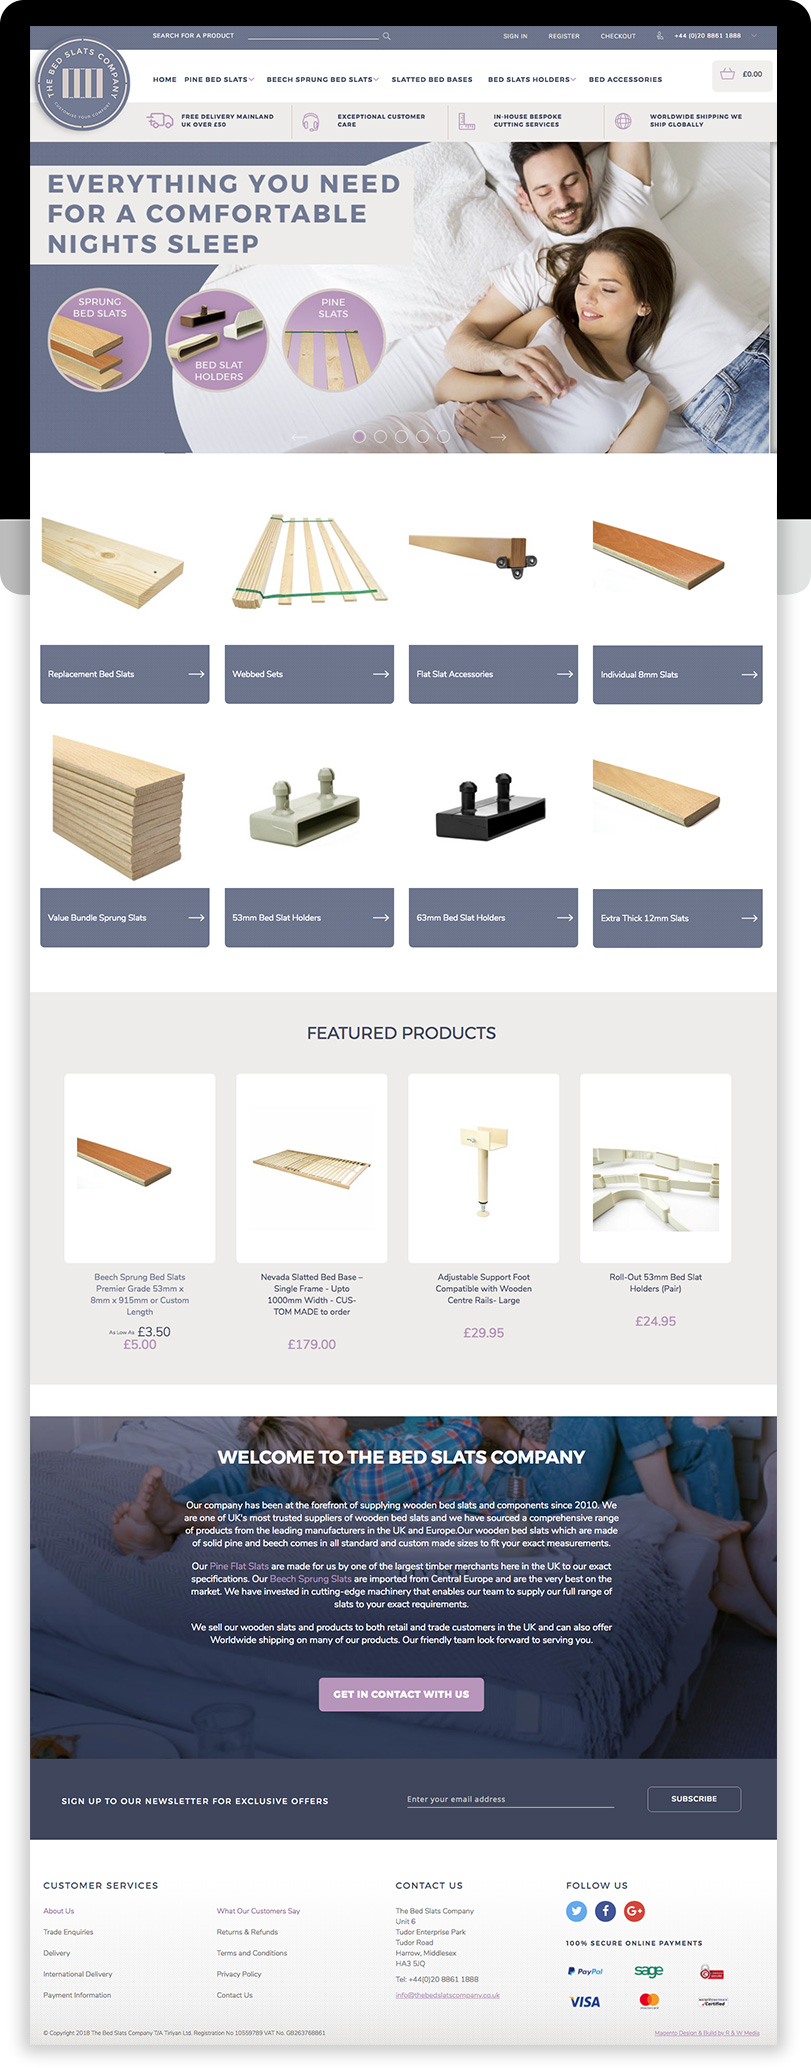 The Bed Slats Company Magento Ecommerce Desktop